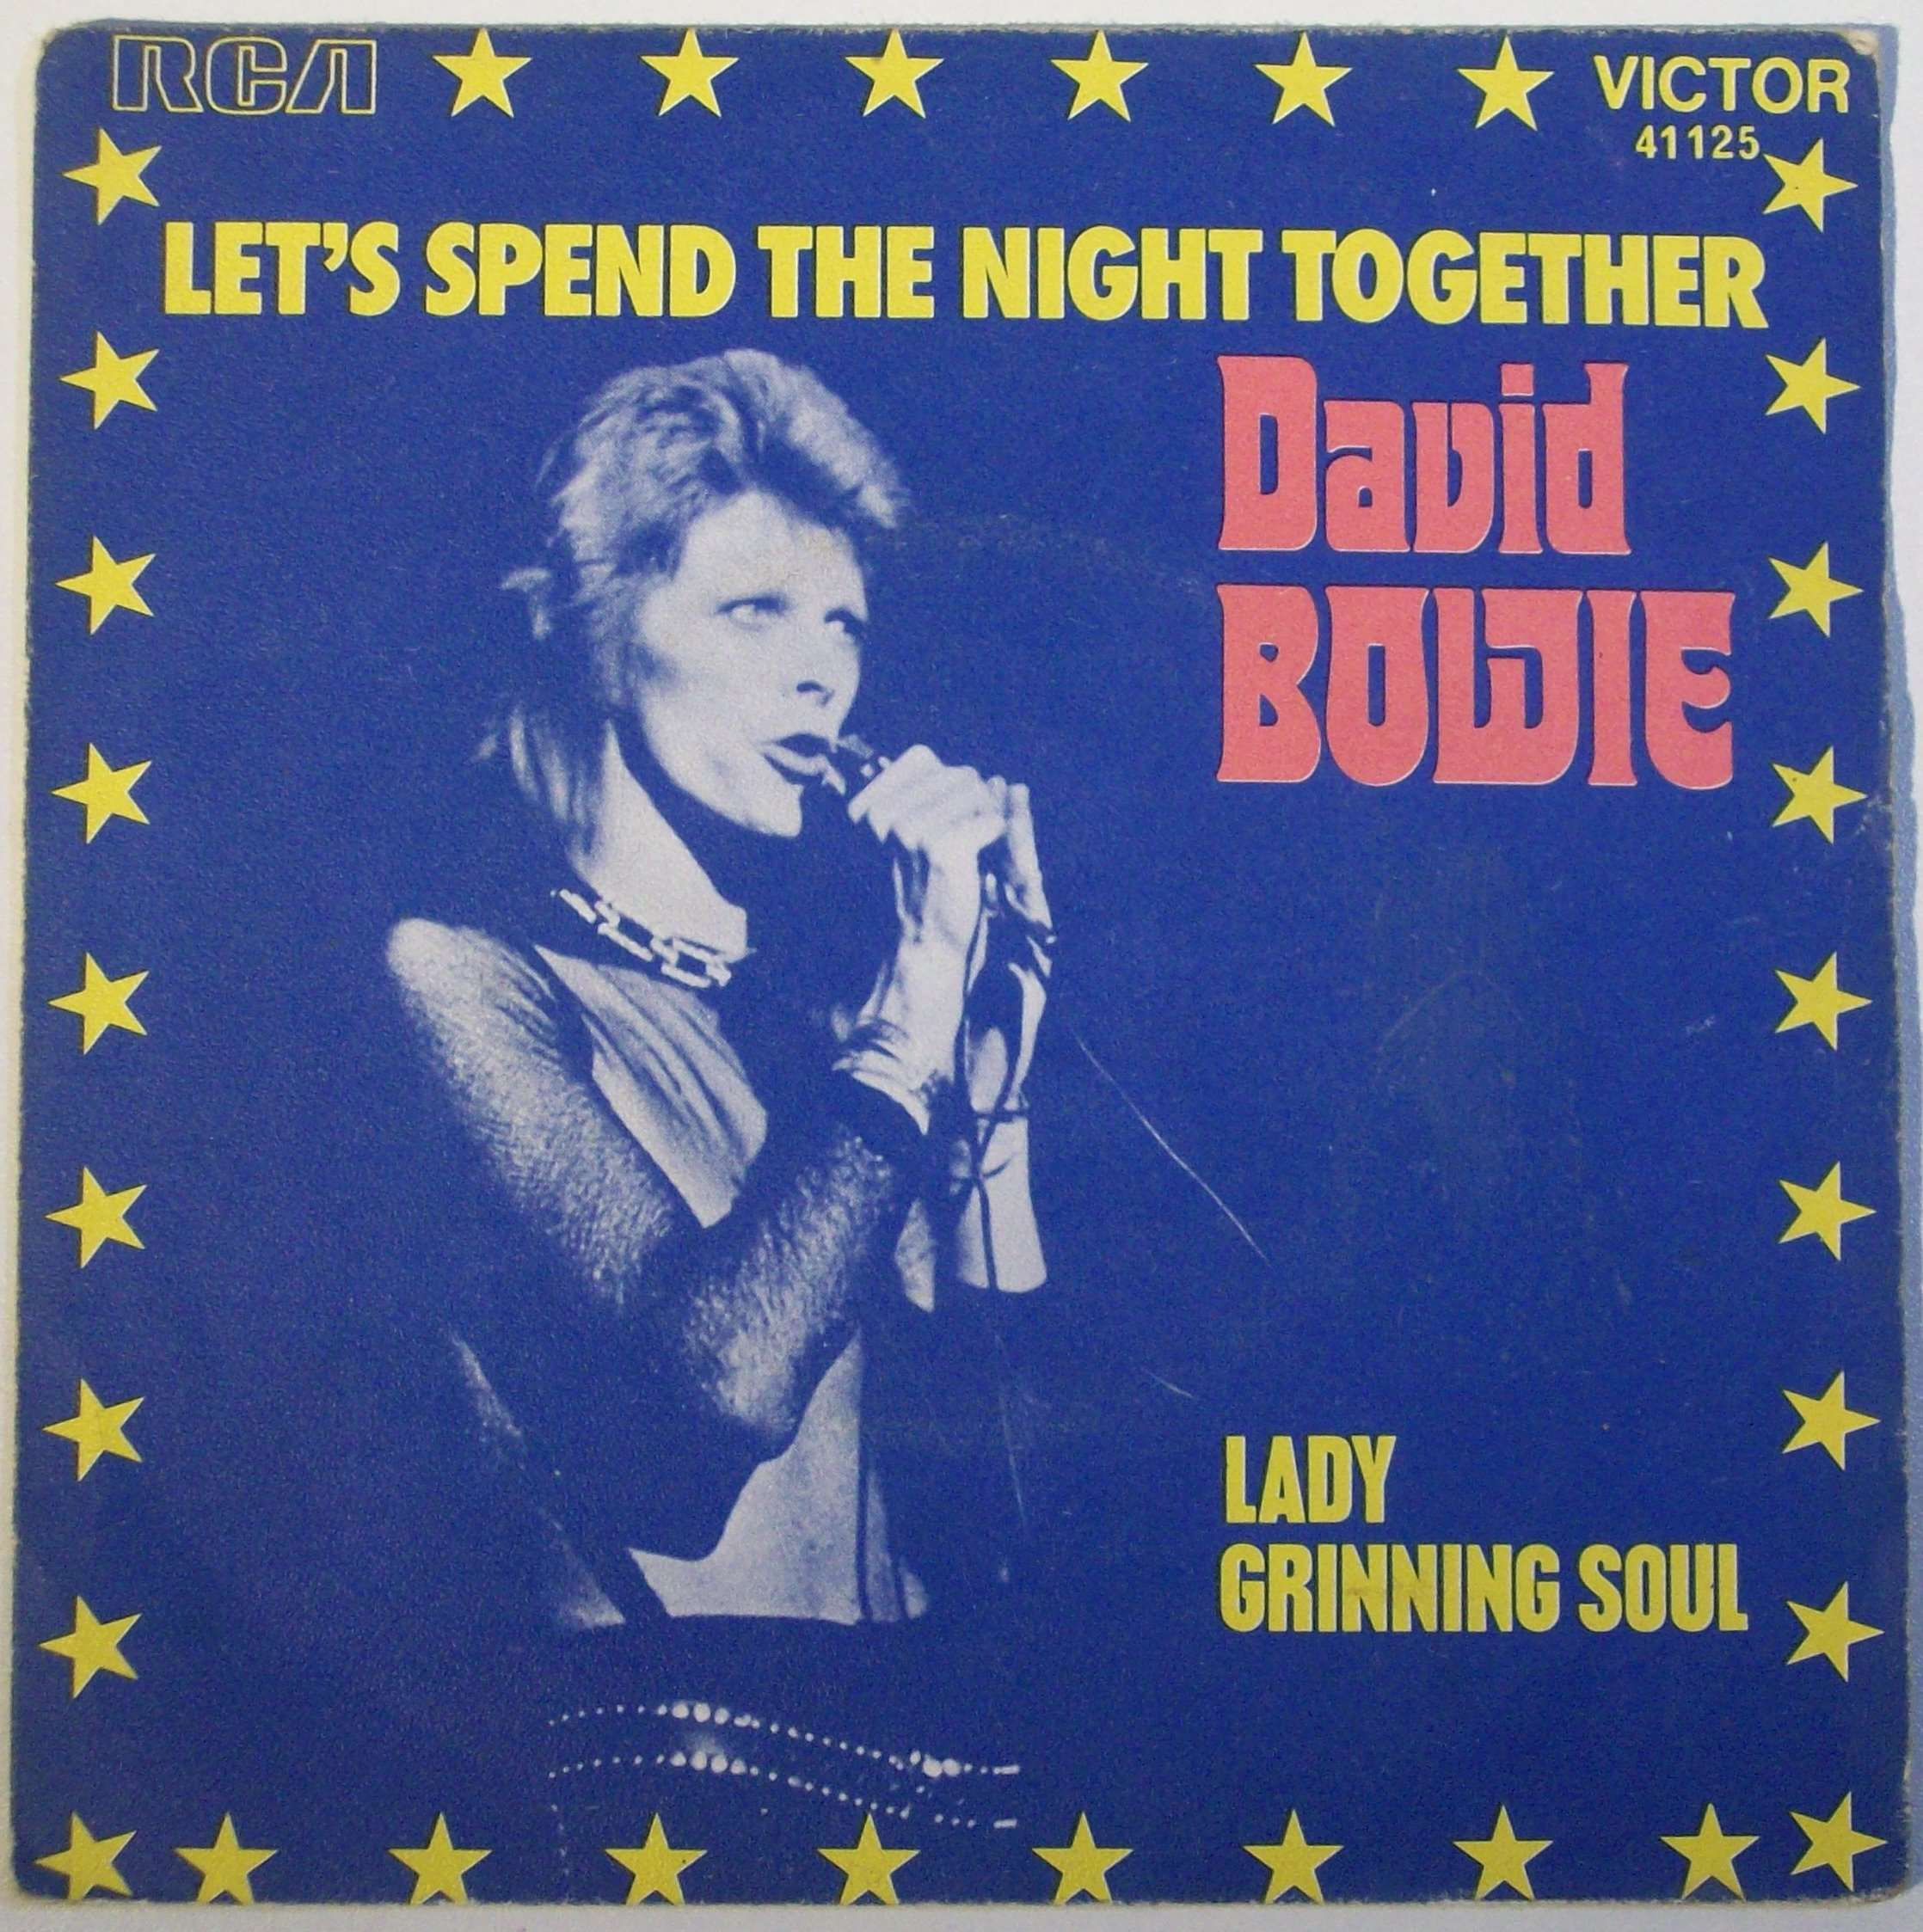 David Bowie: Let Spend The Night Together